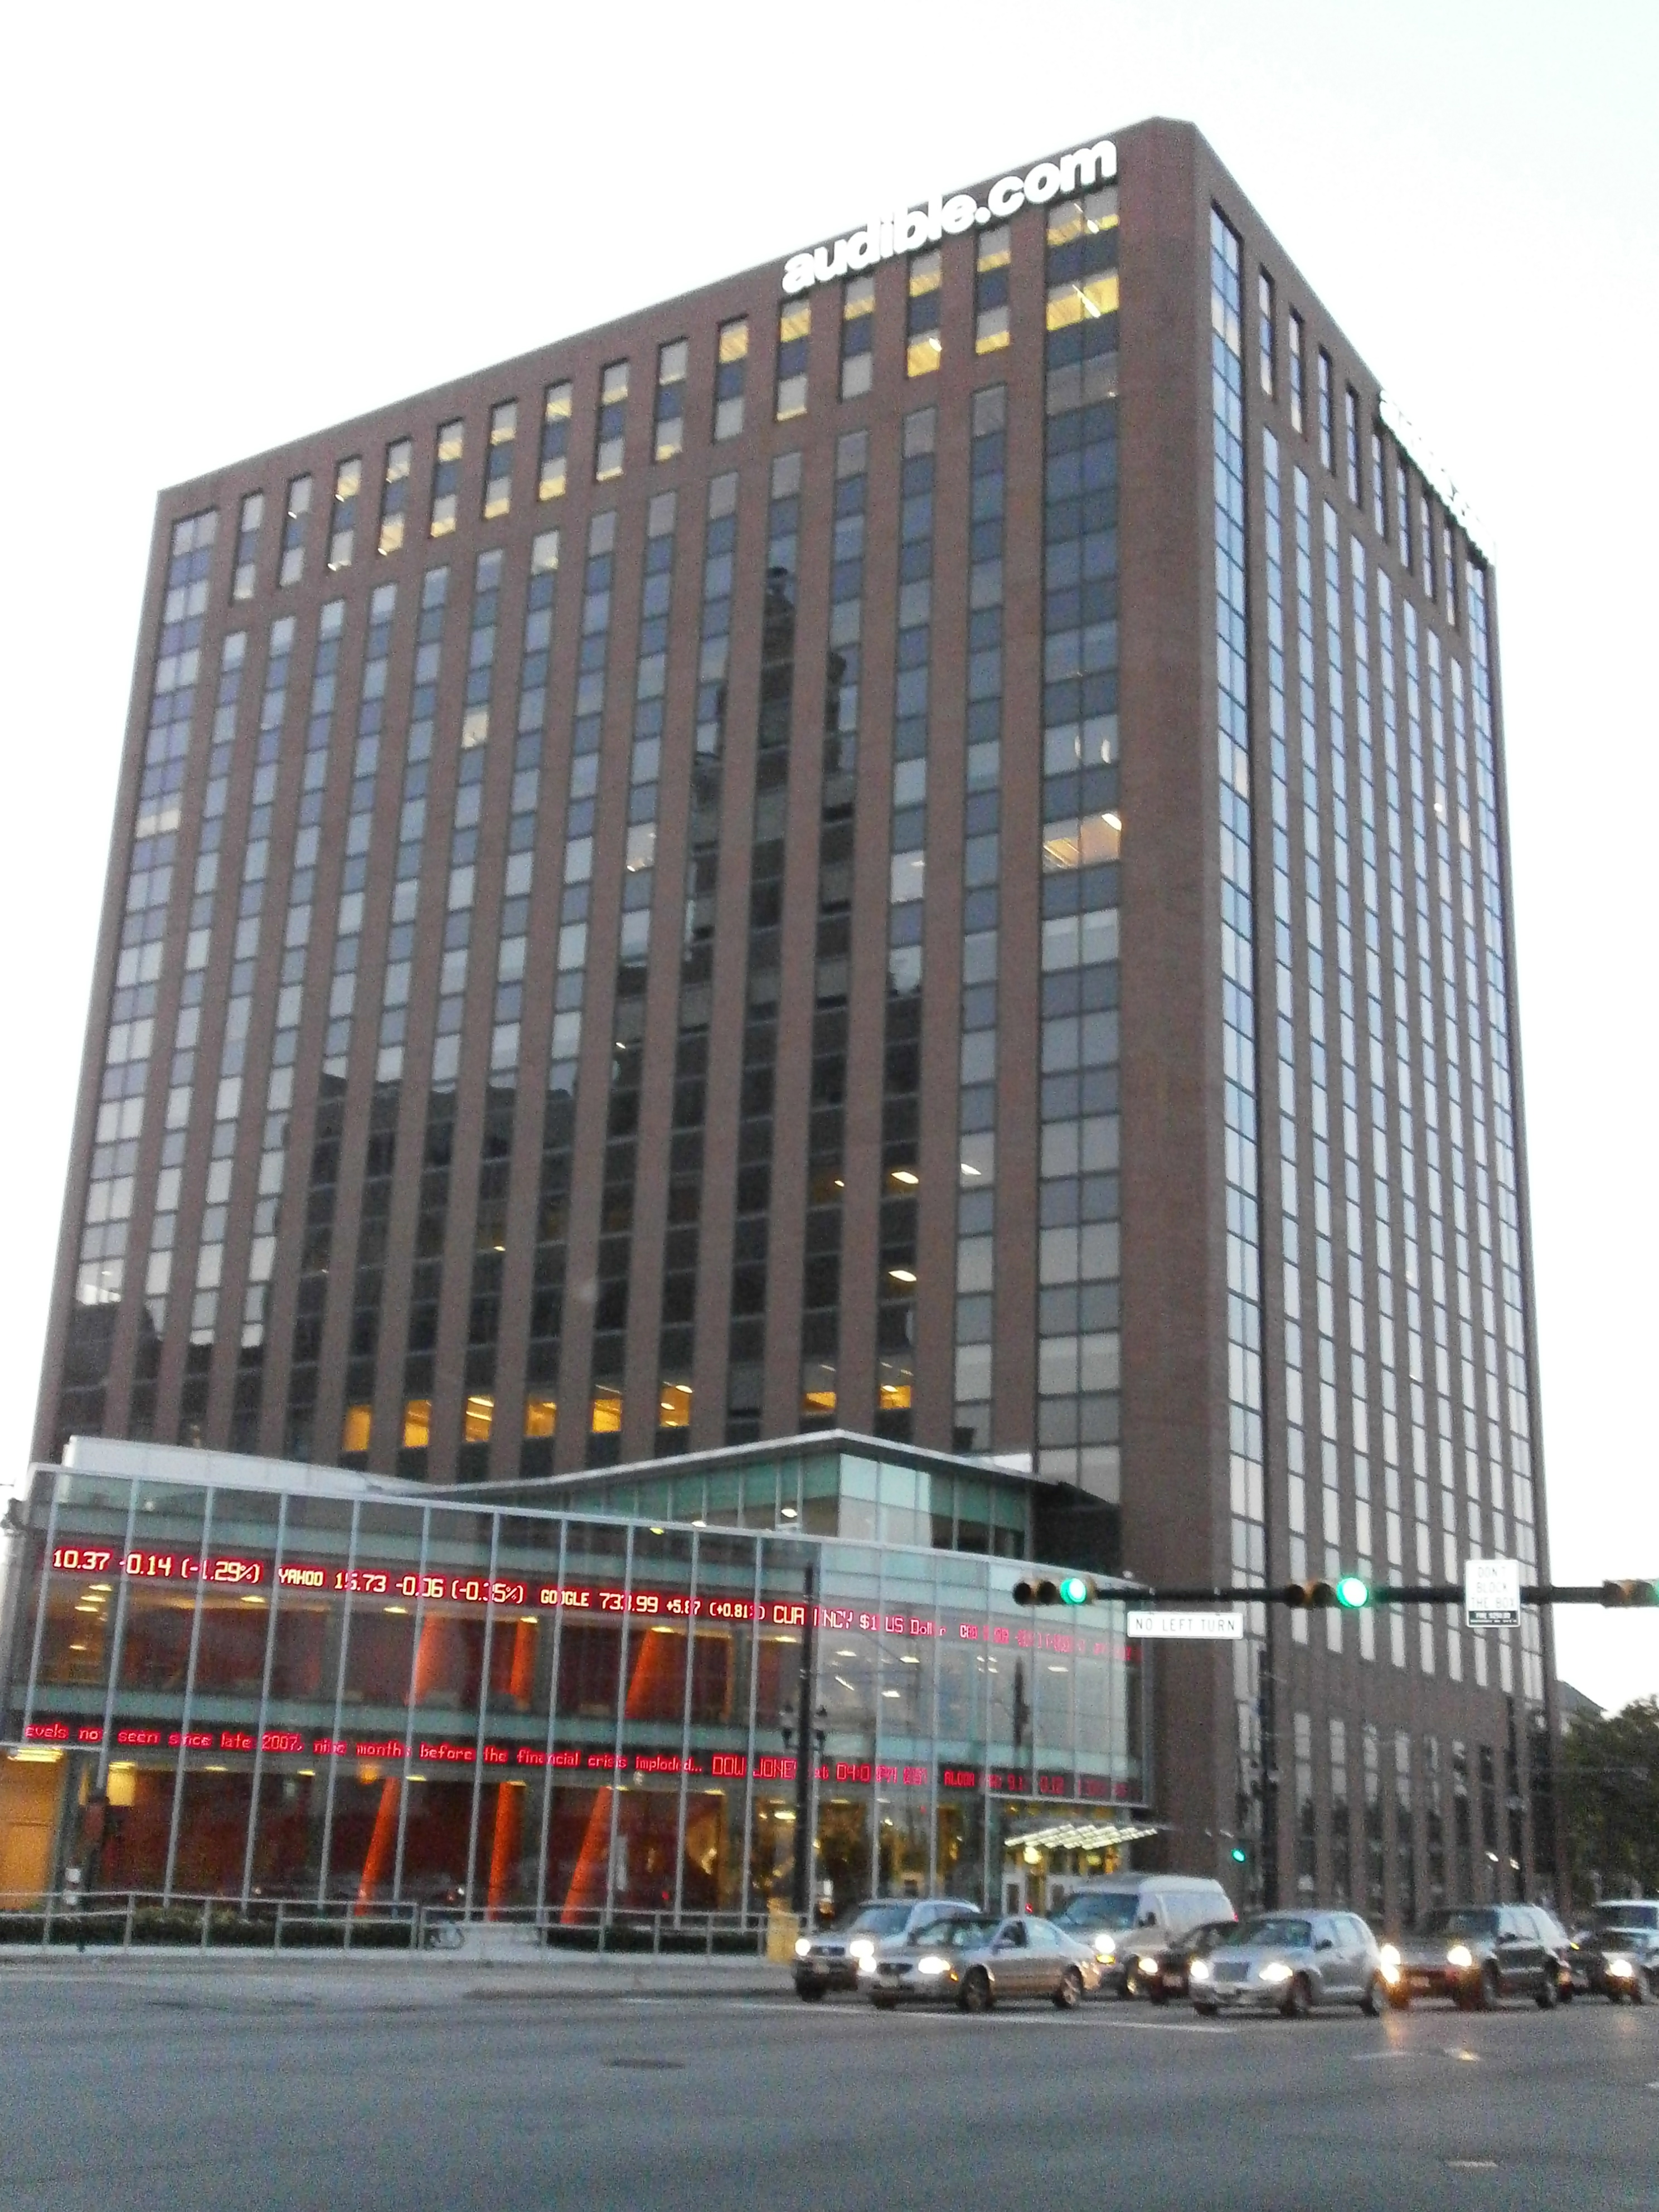 Rutgers Business School and Audible share same office tower in Newark